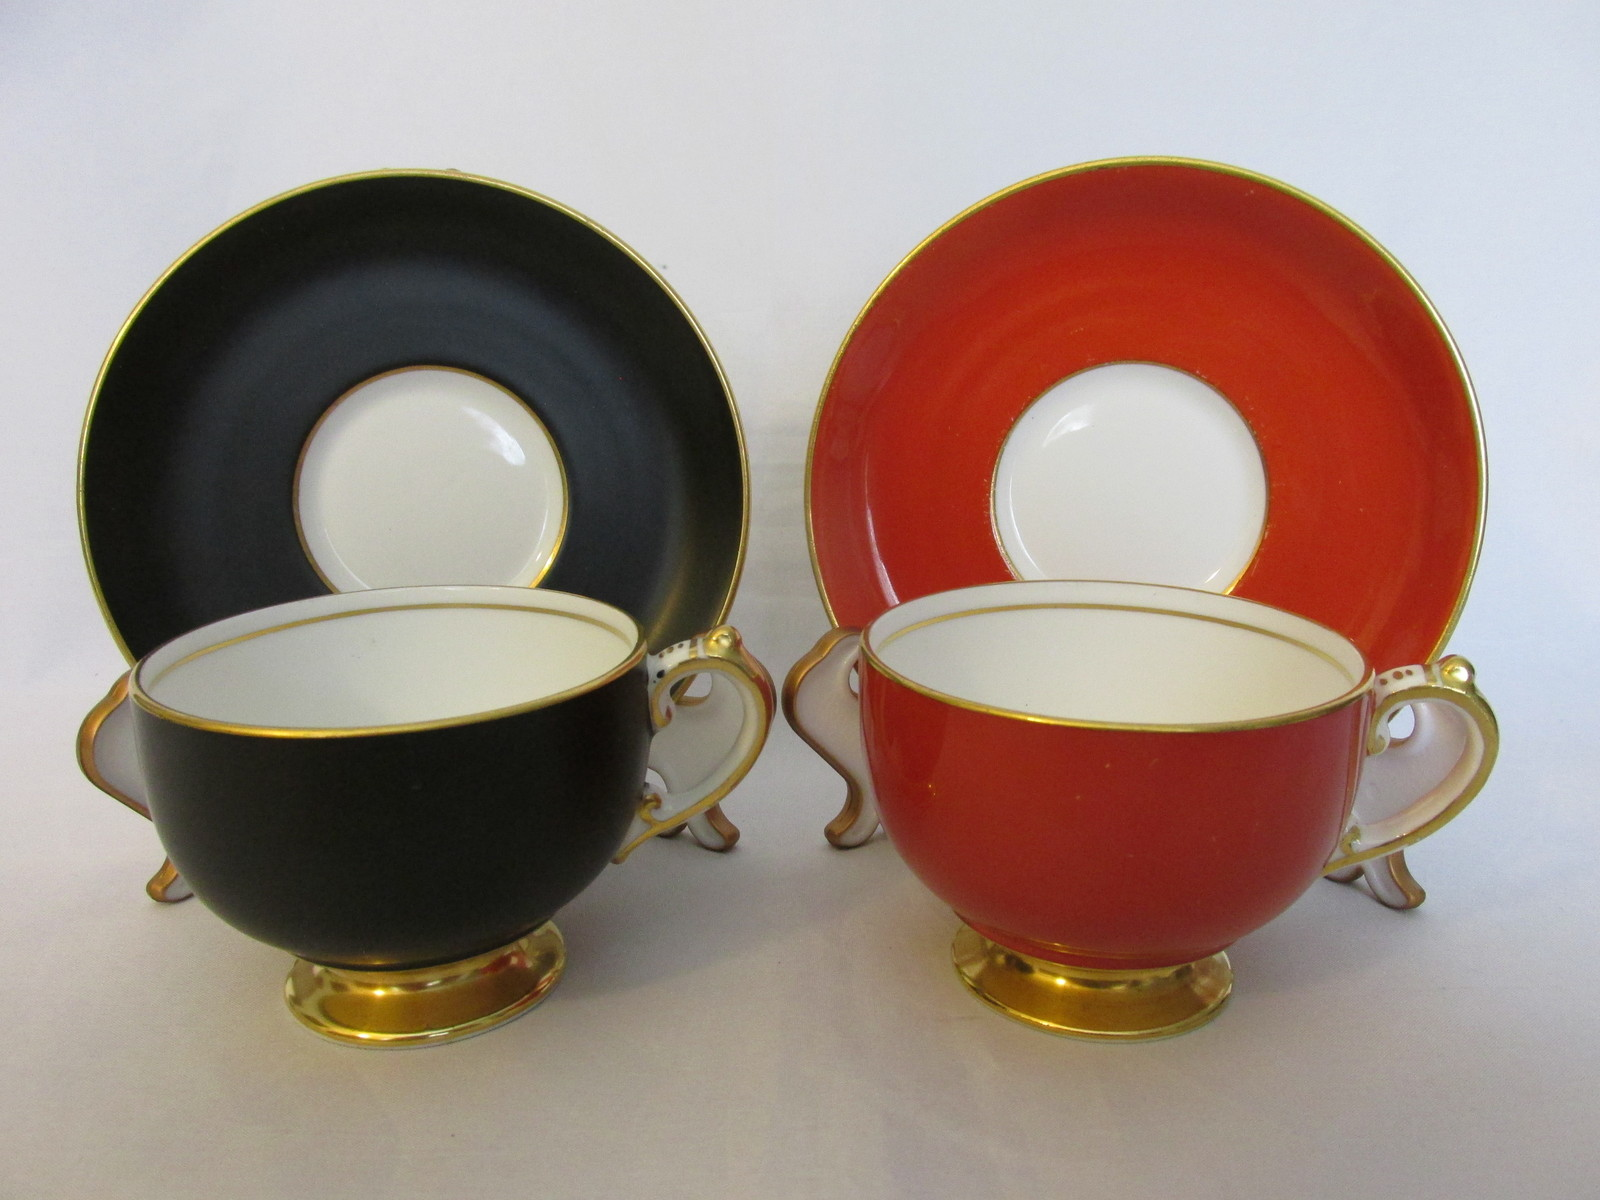 Vintage Demitasse Bone China Cup & Saucer Sets, Copelands Grosvenor, 1930s-'50s